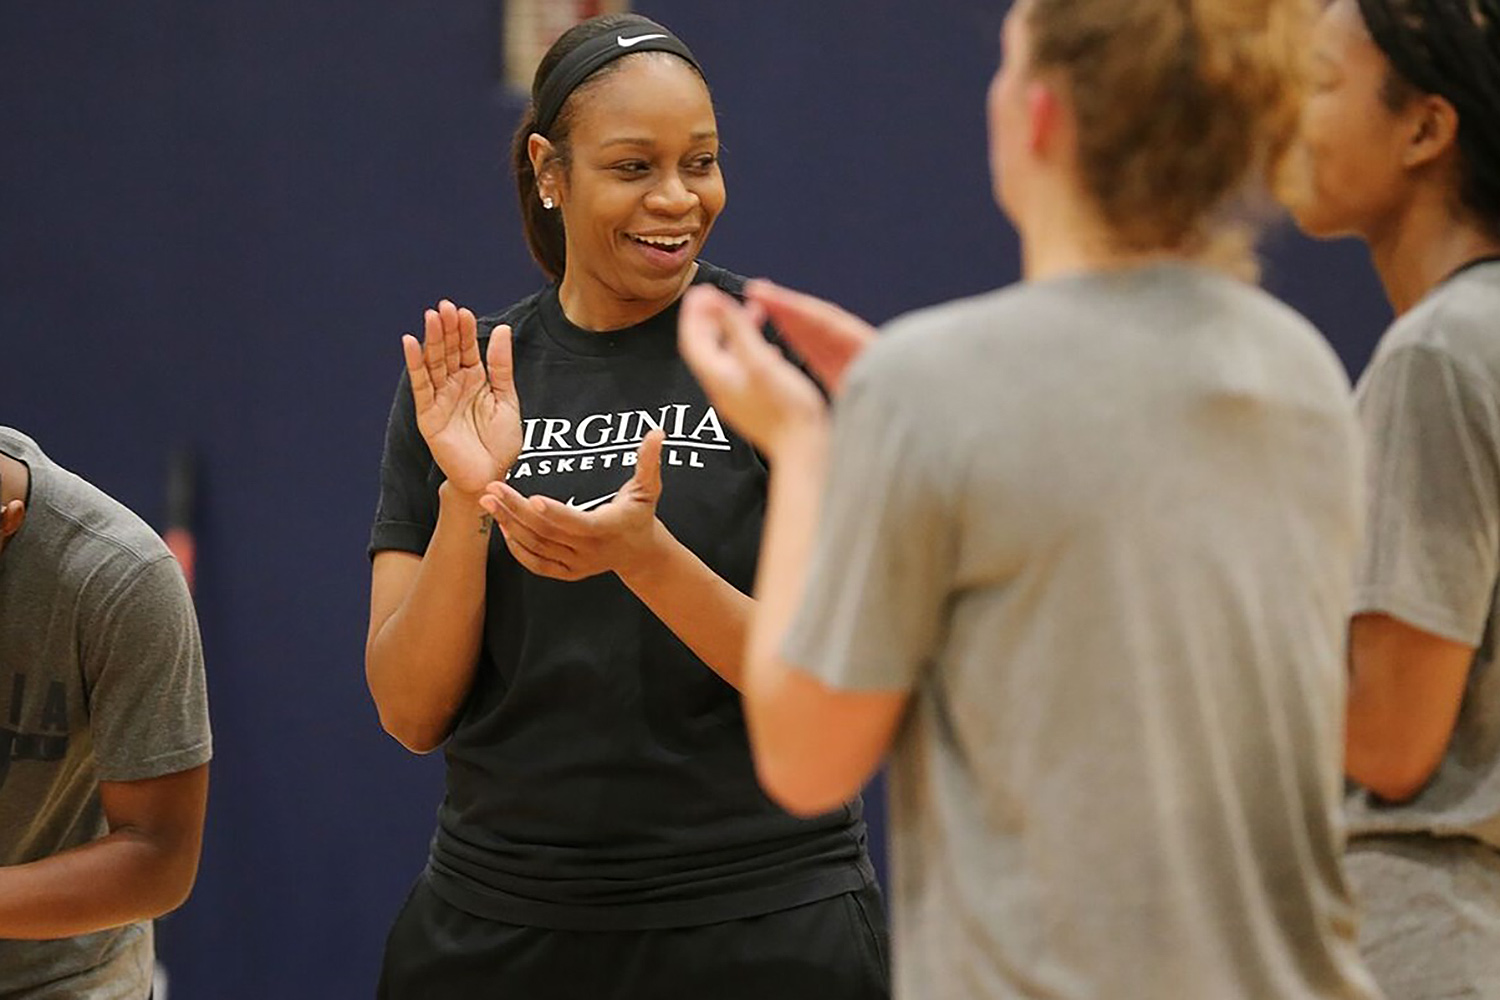 """When Tina Thompson took up basketball at age 9 in Los Angeles, she said she """"never, ever"""" imagined it would lead to enshrinement in the Naismith Hall of Fame."""